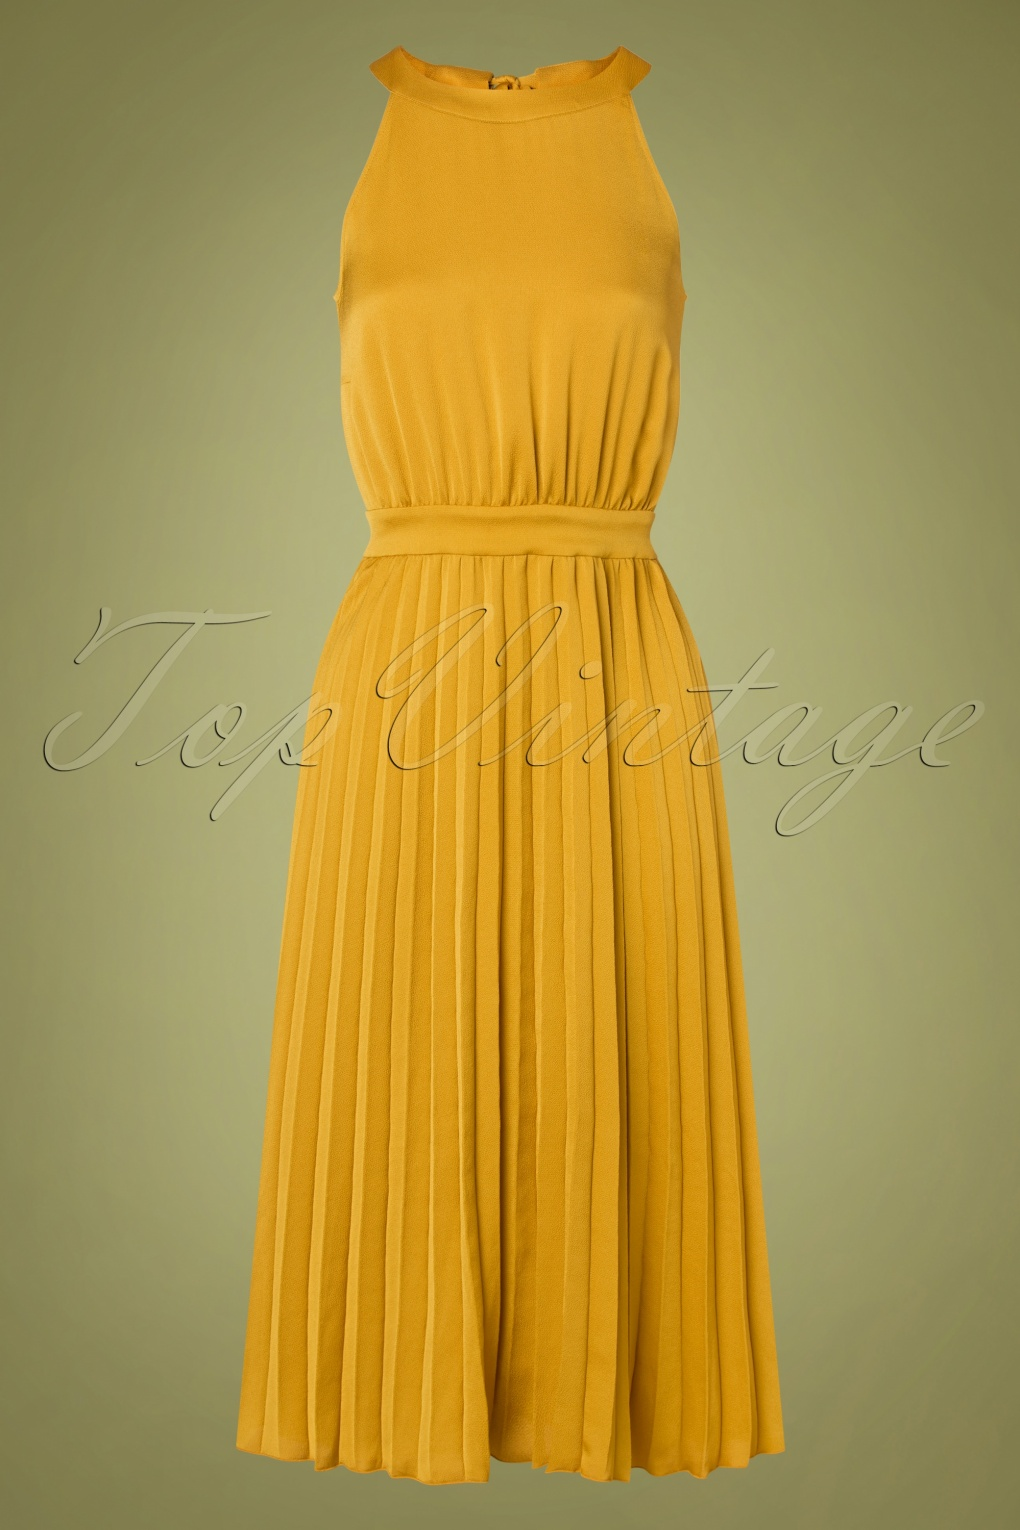 1960s Evening Dresses, Bridesmaids, Mothers Gowns 60s Danna Ginty Plisse Dress in Curry Yellow £88.84 AT vintagedancer.com